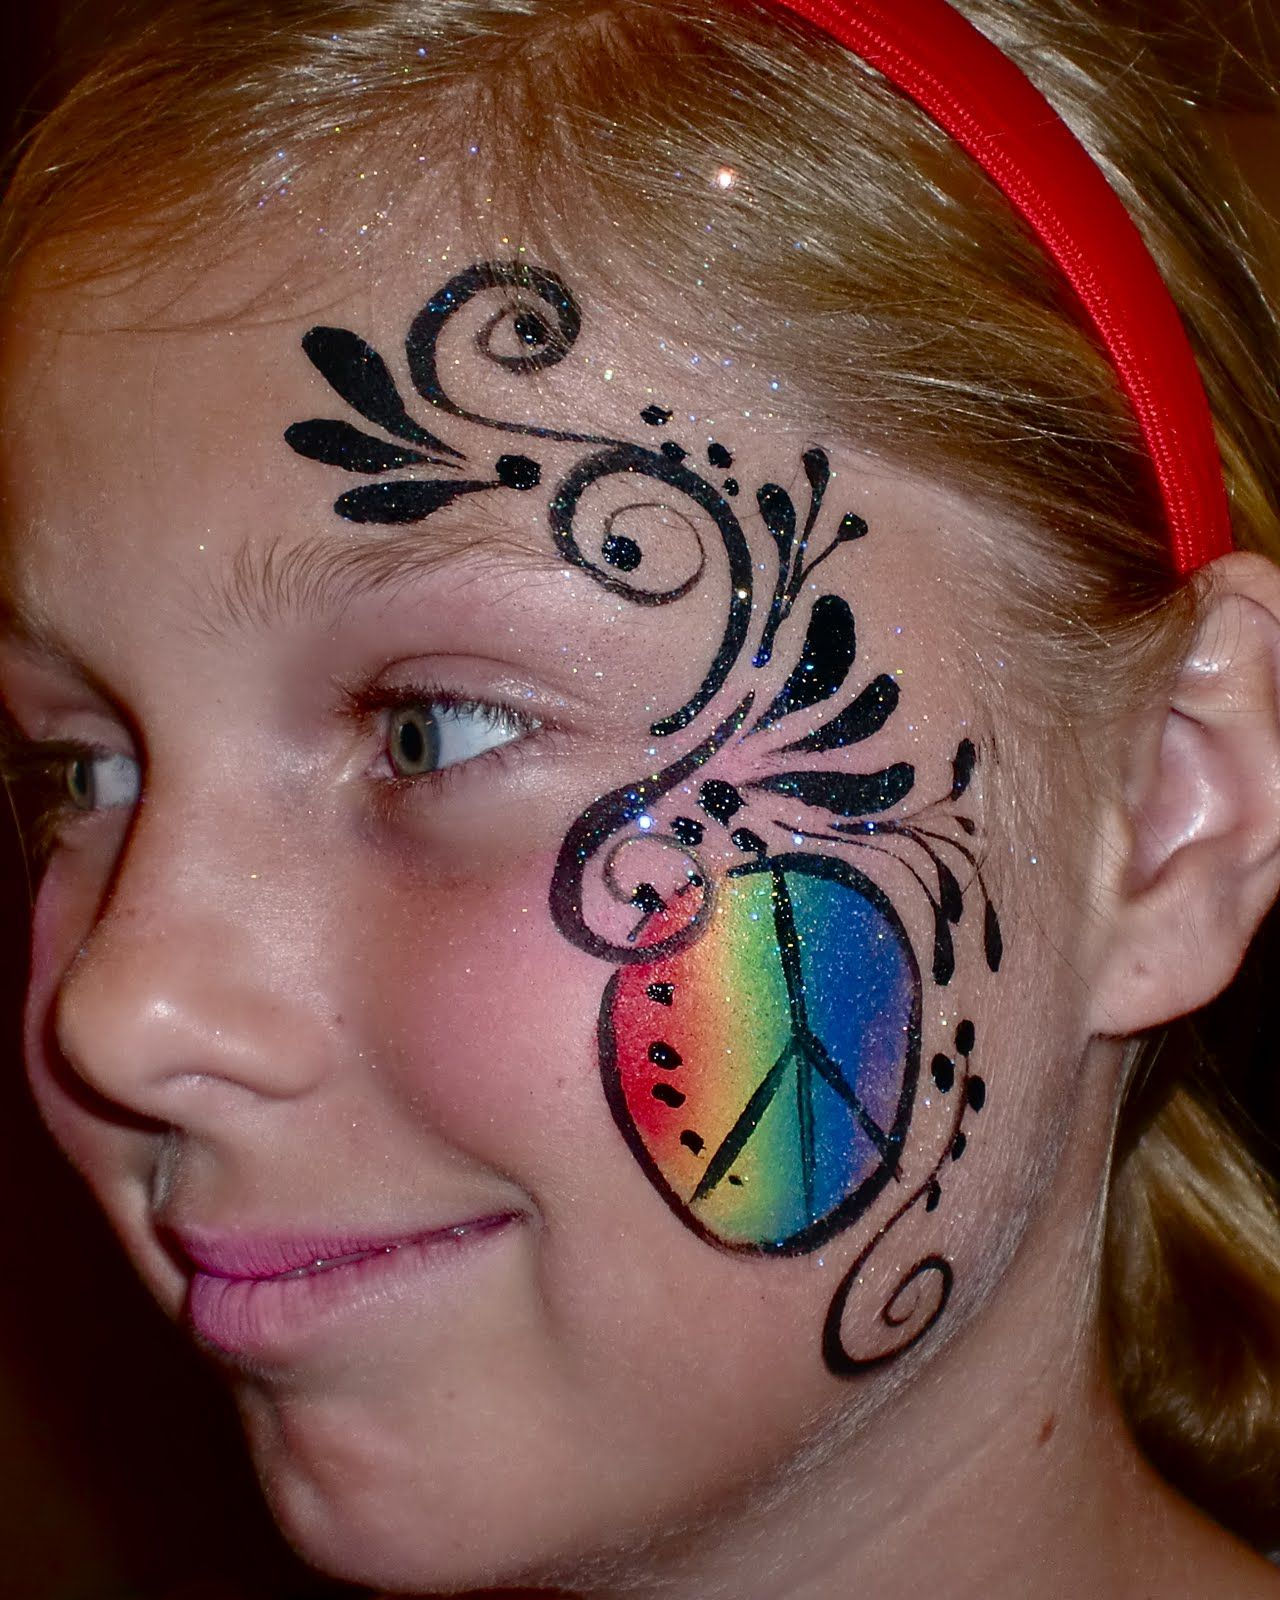 Face Painting Images Face Painting Illusions And Balloon Art Llc Face Painting Peace Sign Hippie Face Paint Face Painting Face Painting Images